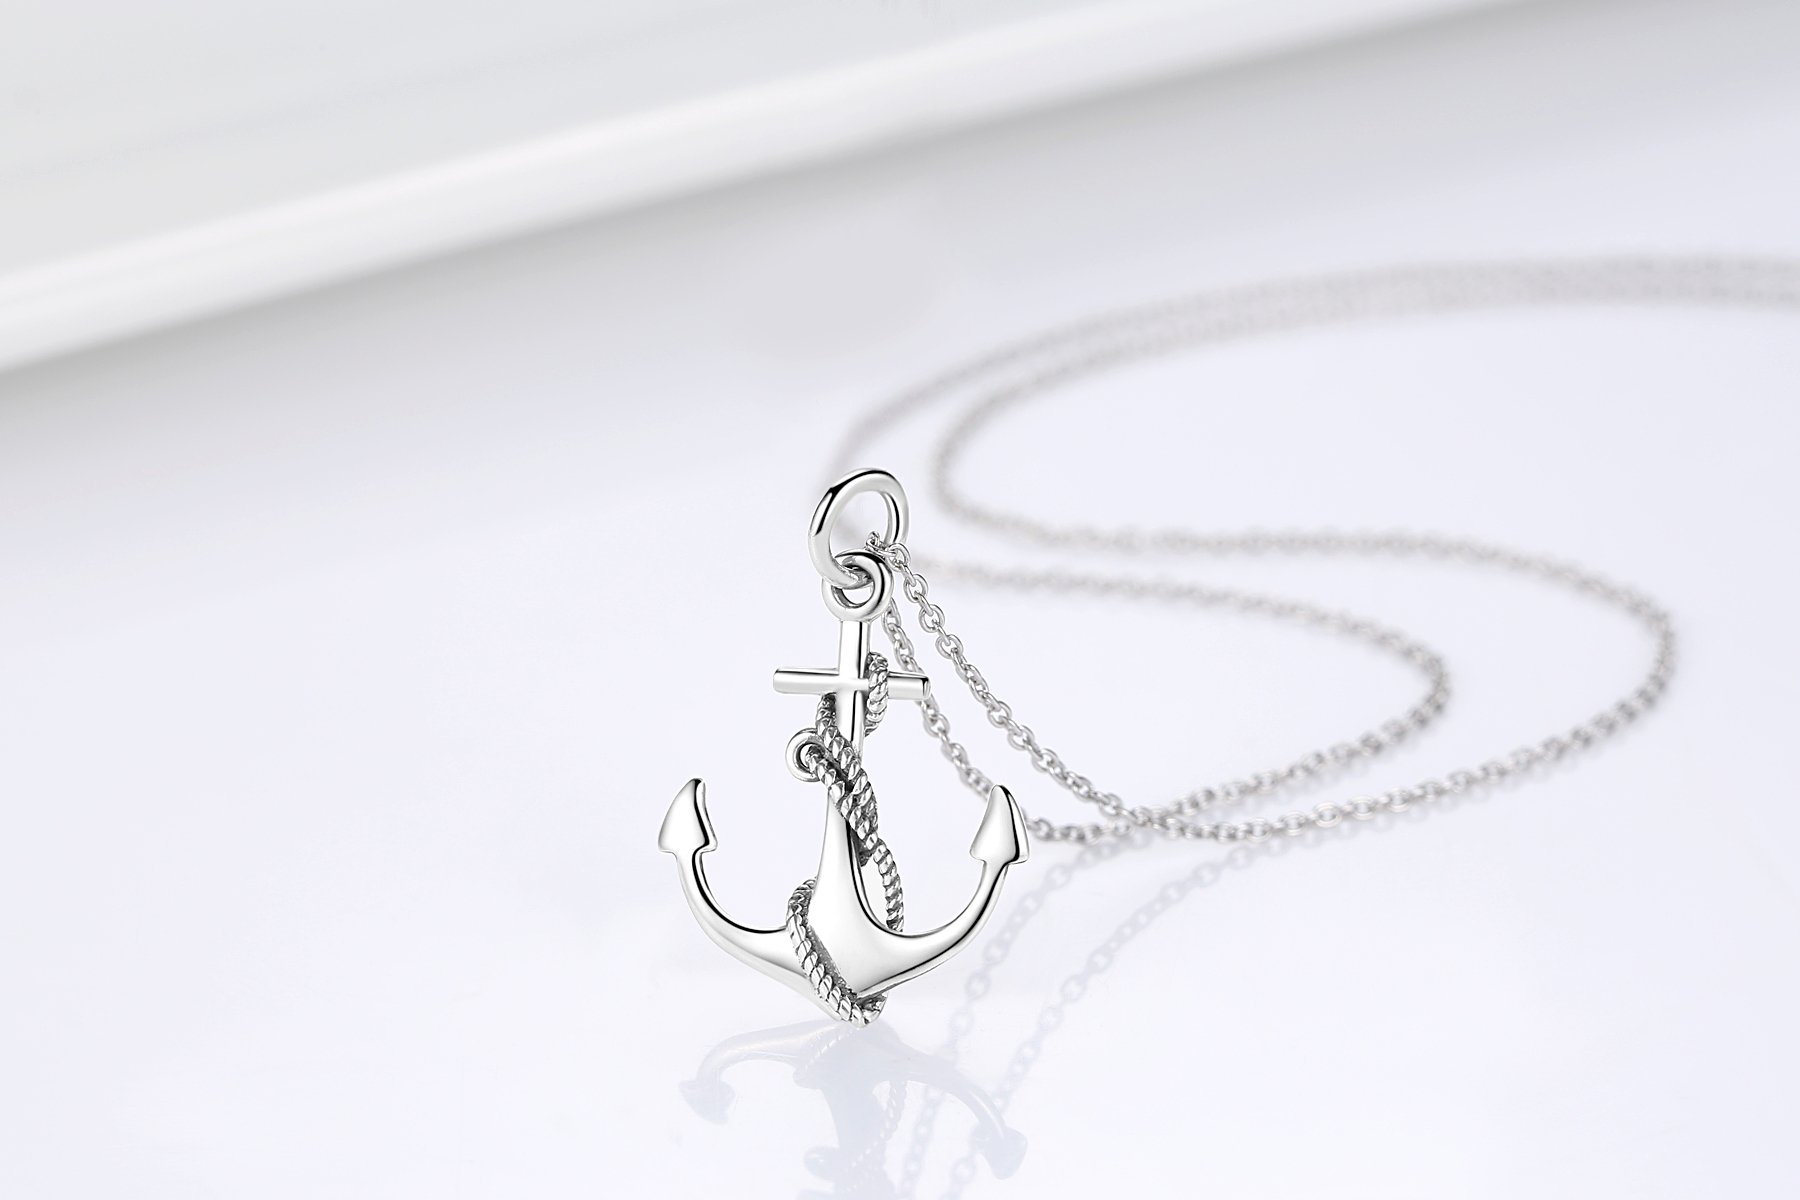 Women's Necklaces Sterling Silver Anchor Pendant Necklace Fine Jewelry for Women by Cuoka (Image #6)